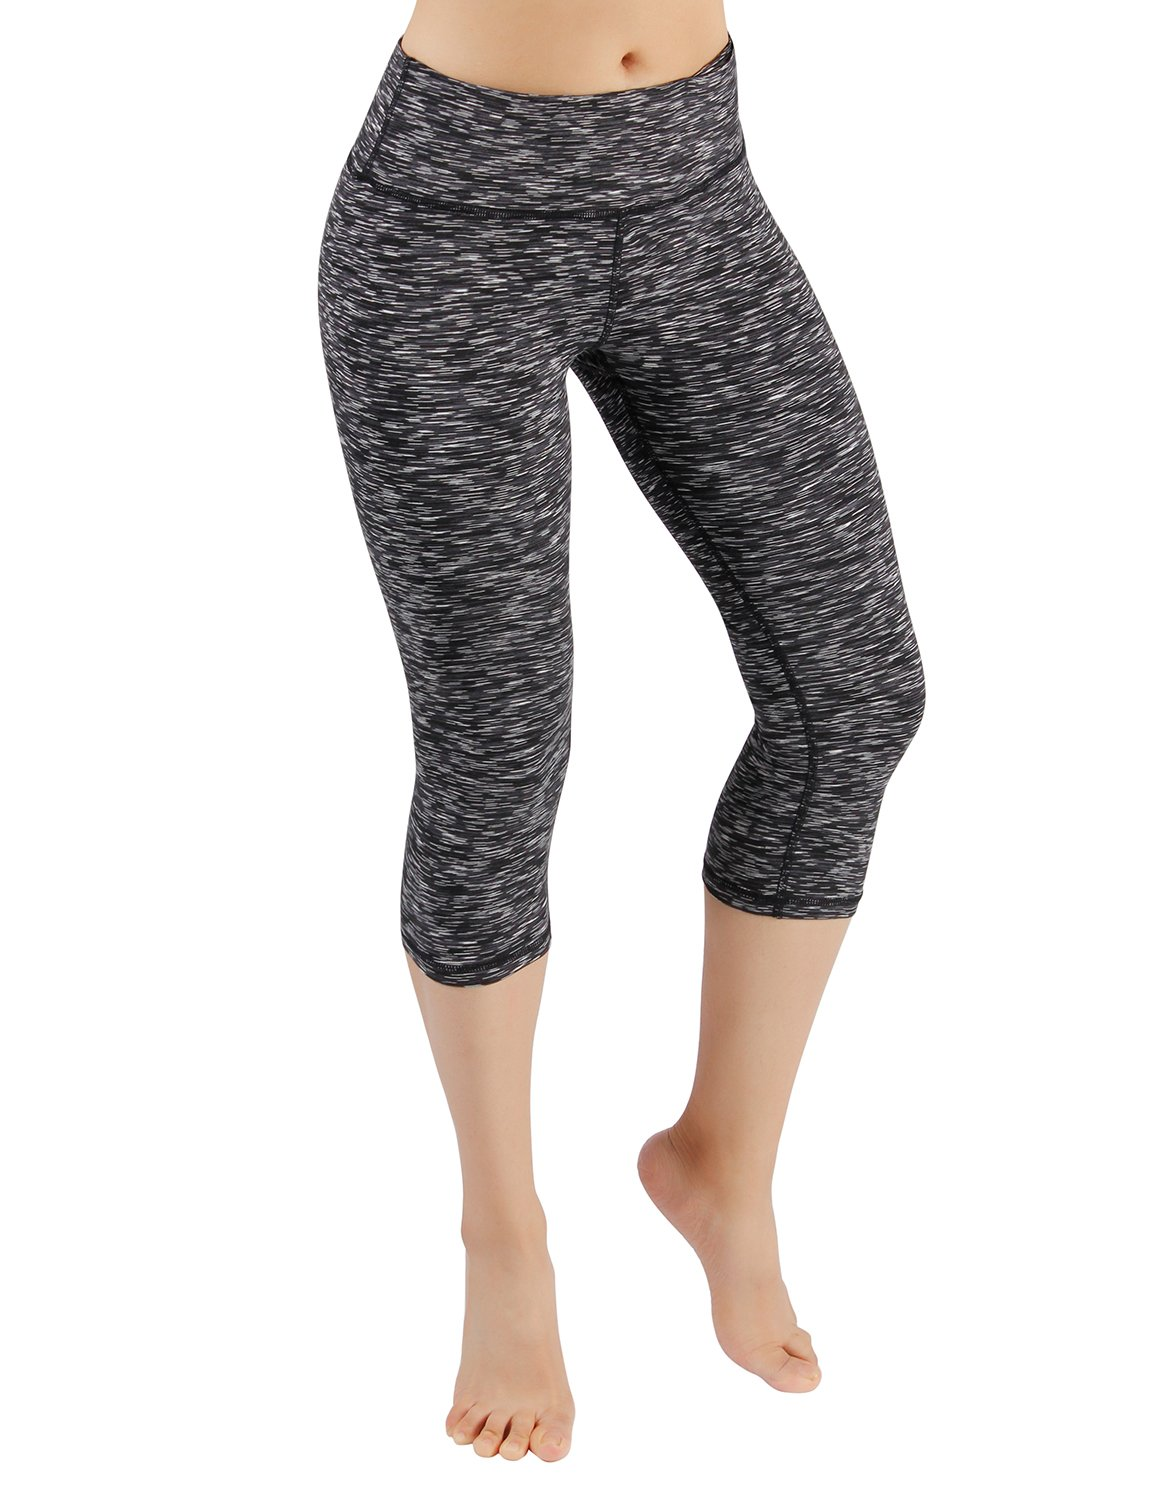 ODODOS Power Flex Yoga Capris Pants Tummy Control Workout Running 4 Way Stretch Yoga Capris Leggingss with Hidden Pocket,SpaceDyeMattBlack,Medium